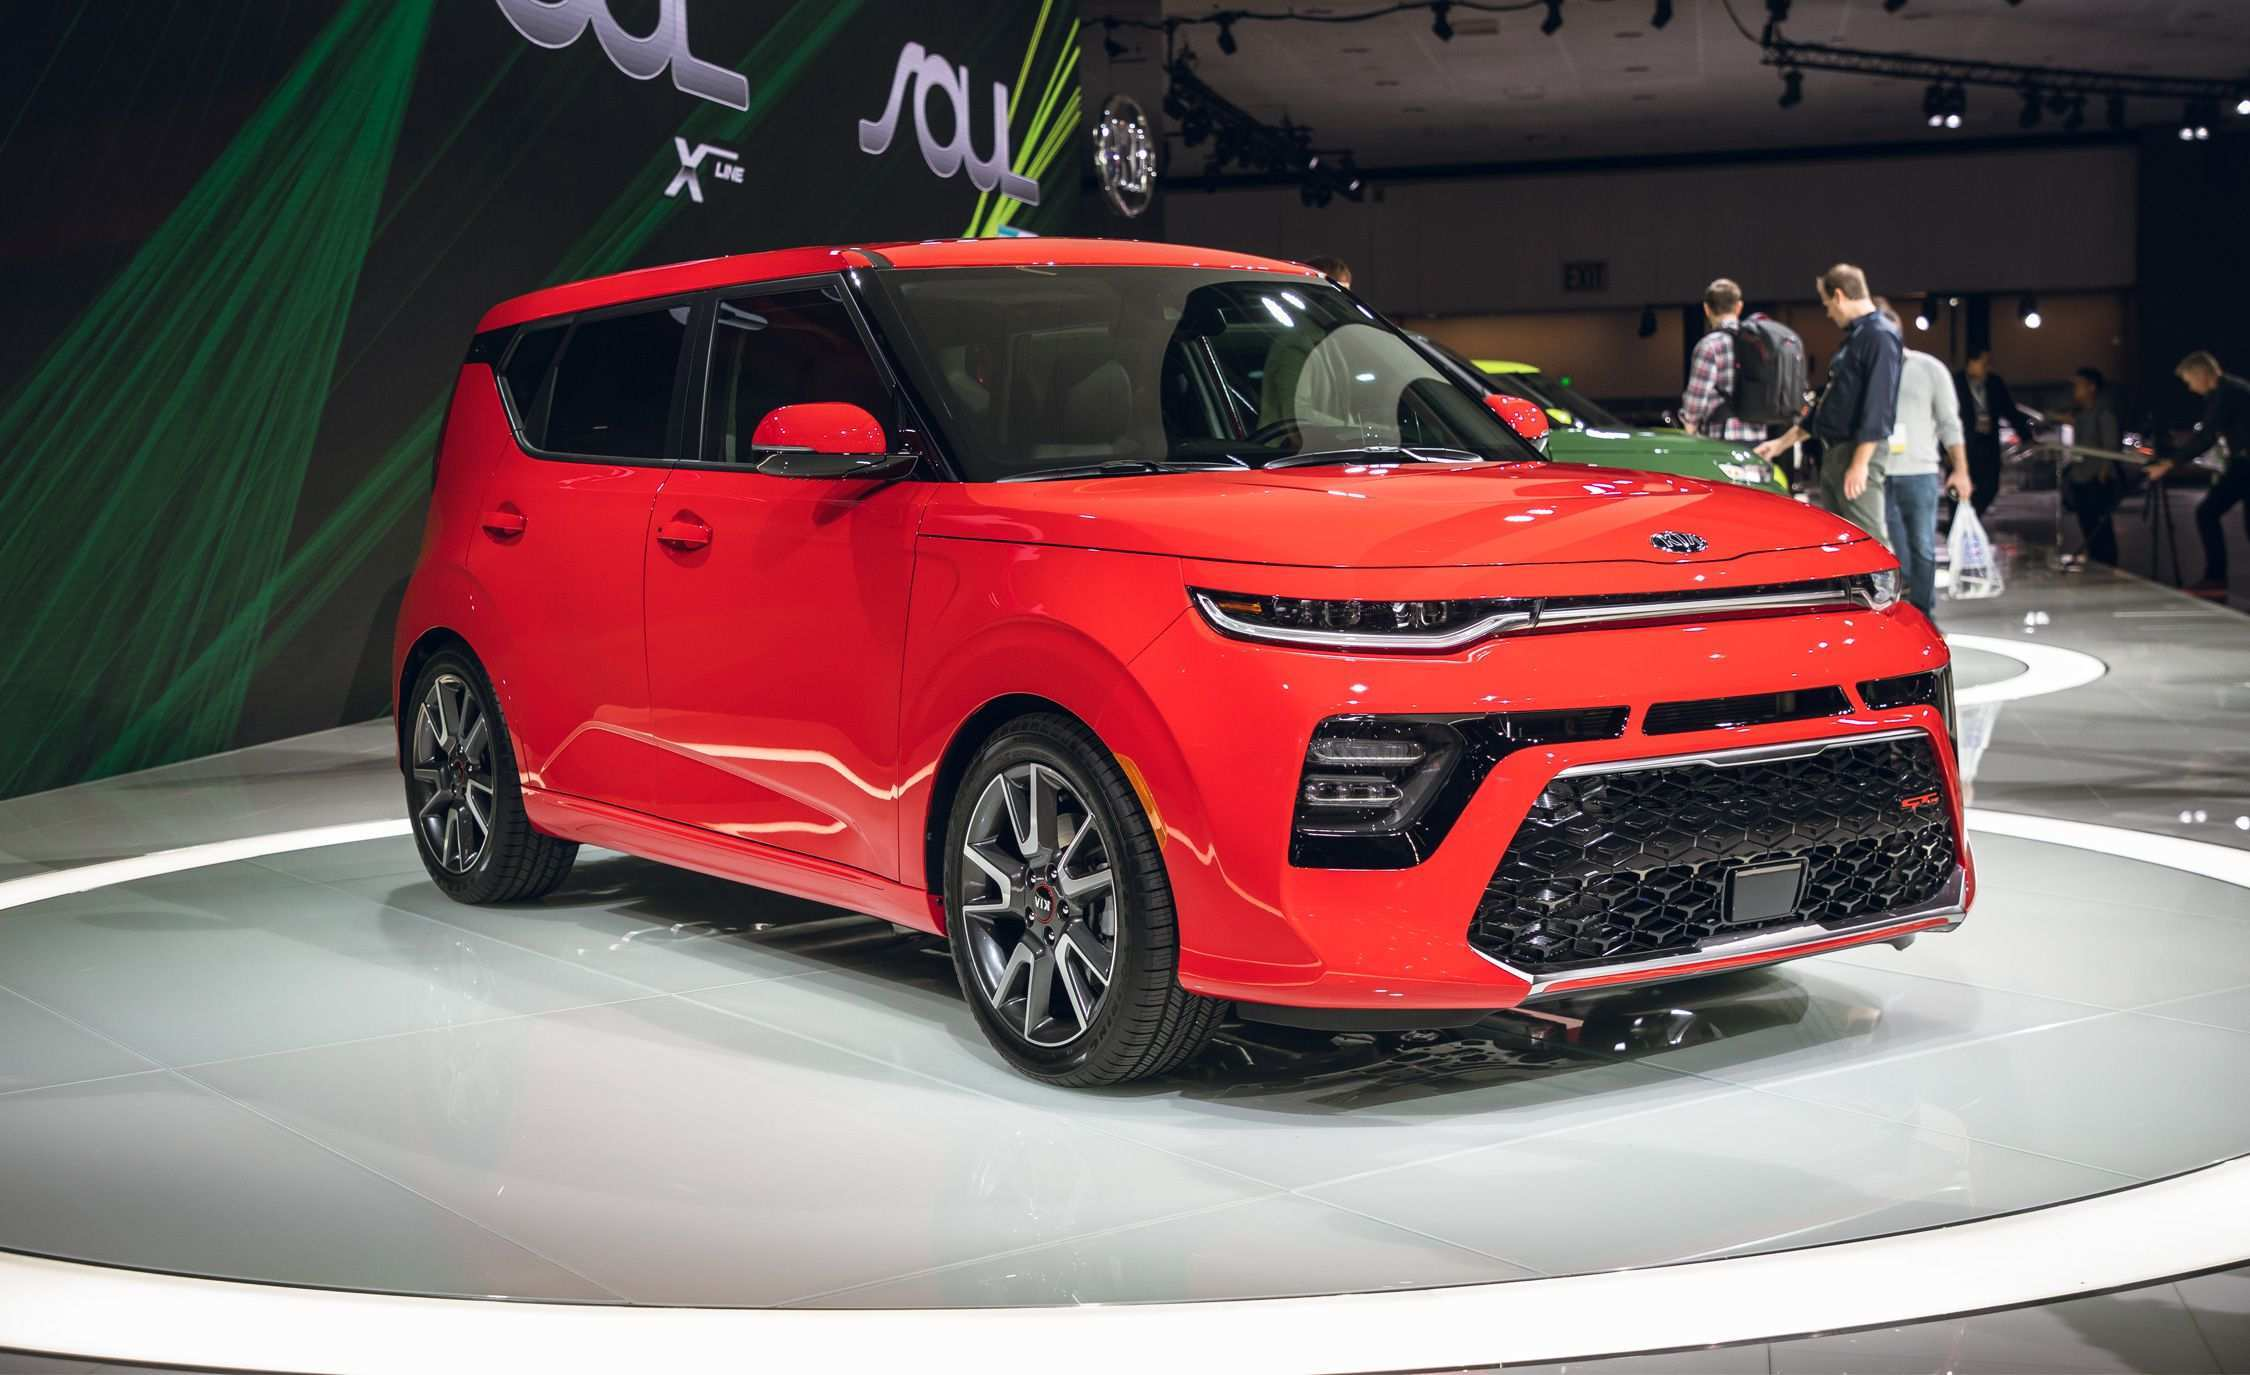 86 Gallery of Kia Truck 2020 Performance and New Engine for Kia Truck 2020